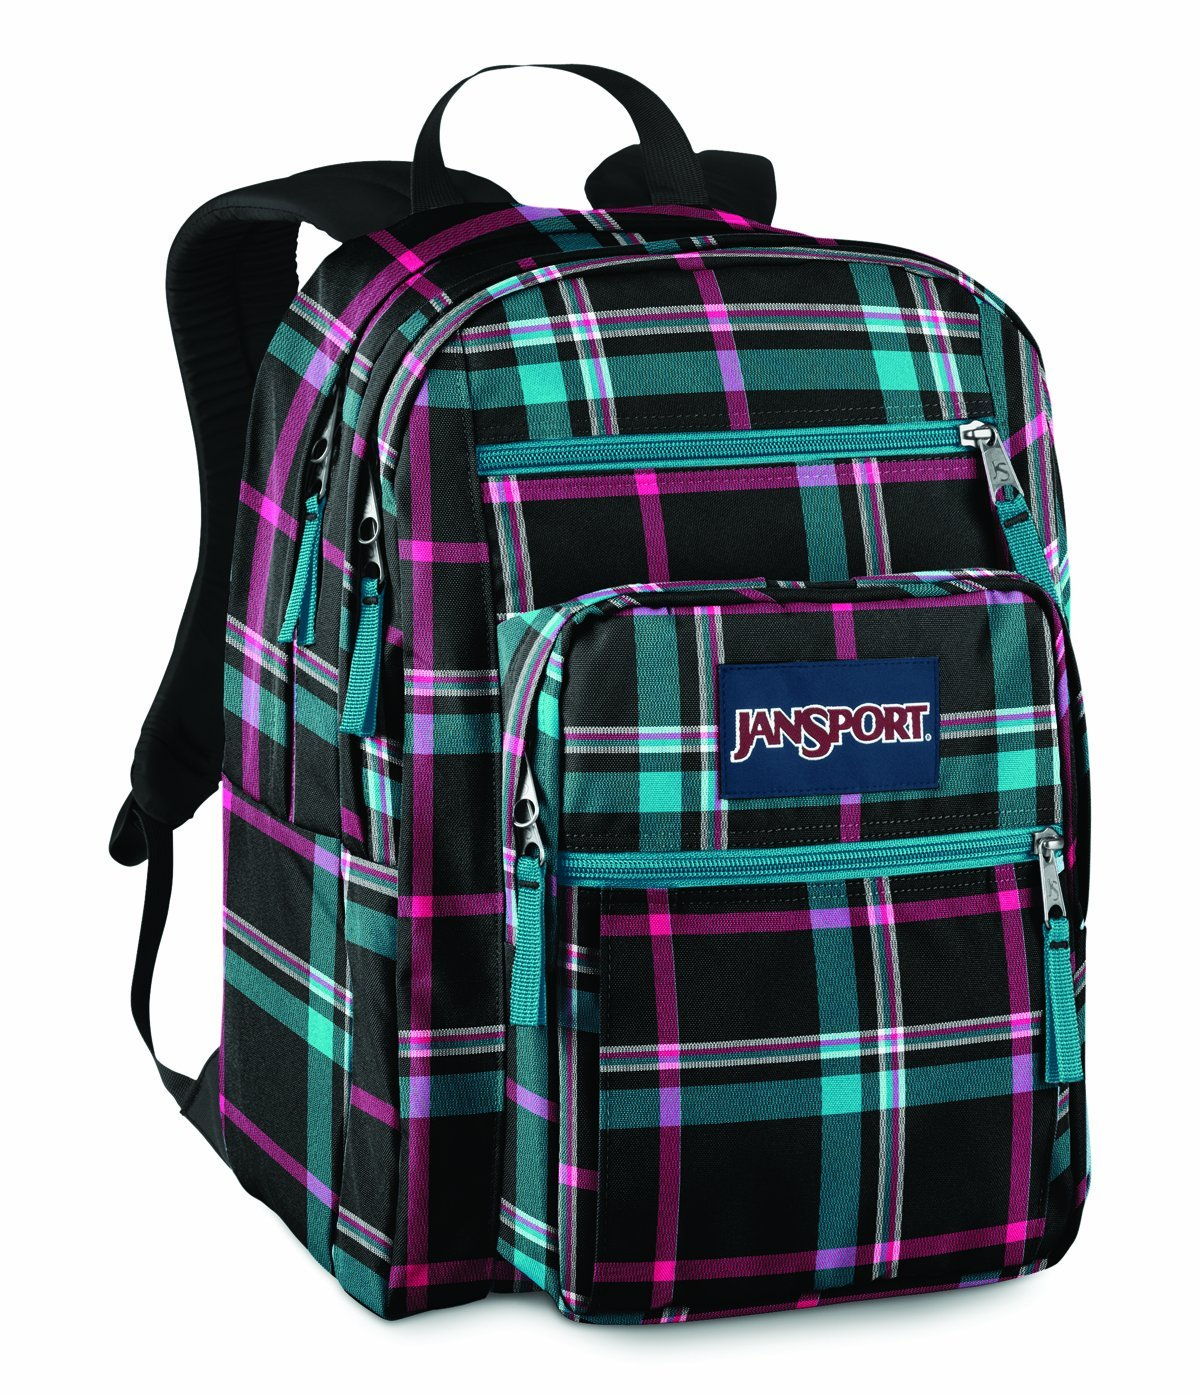 Jansport Backpacks Girls HYuW5tu3